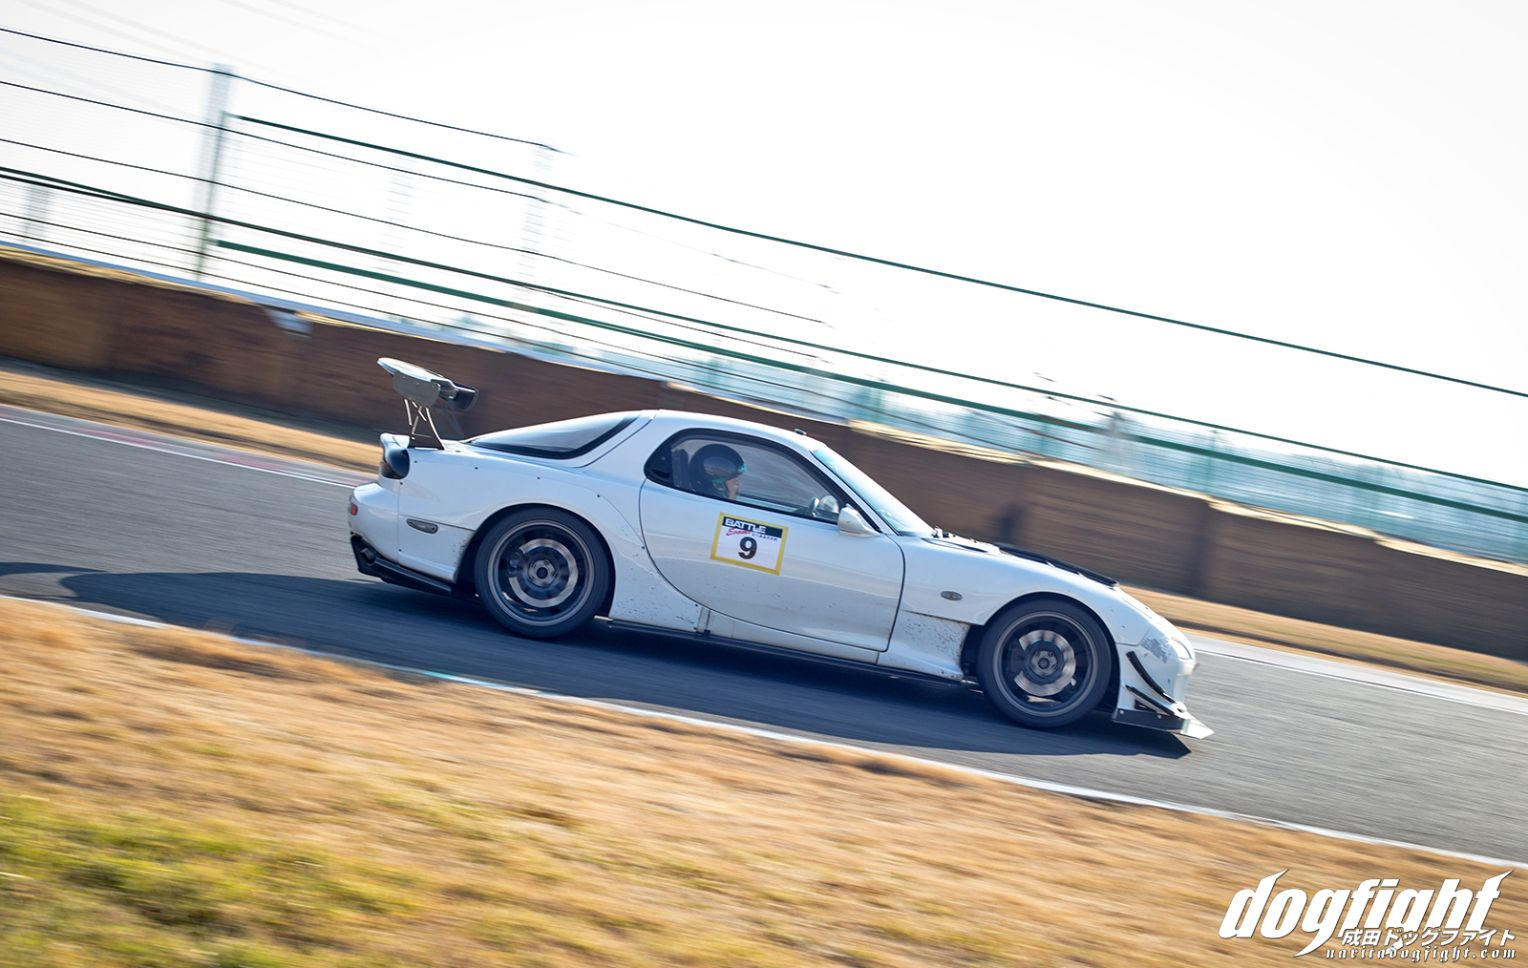 Encounter ぽりぽり Dream Works FD3S Mazda rx7, Mazda, Rx7